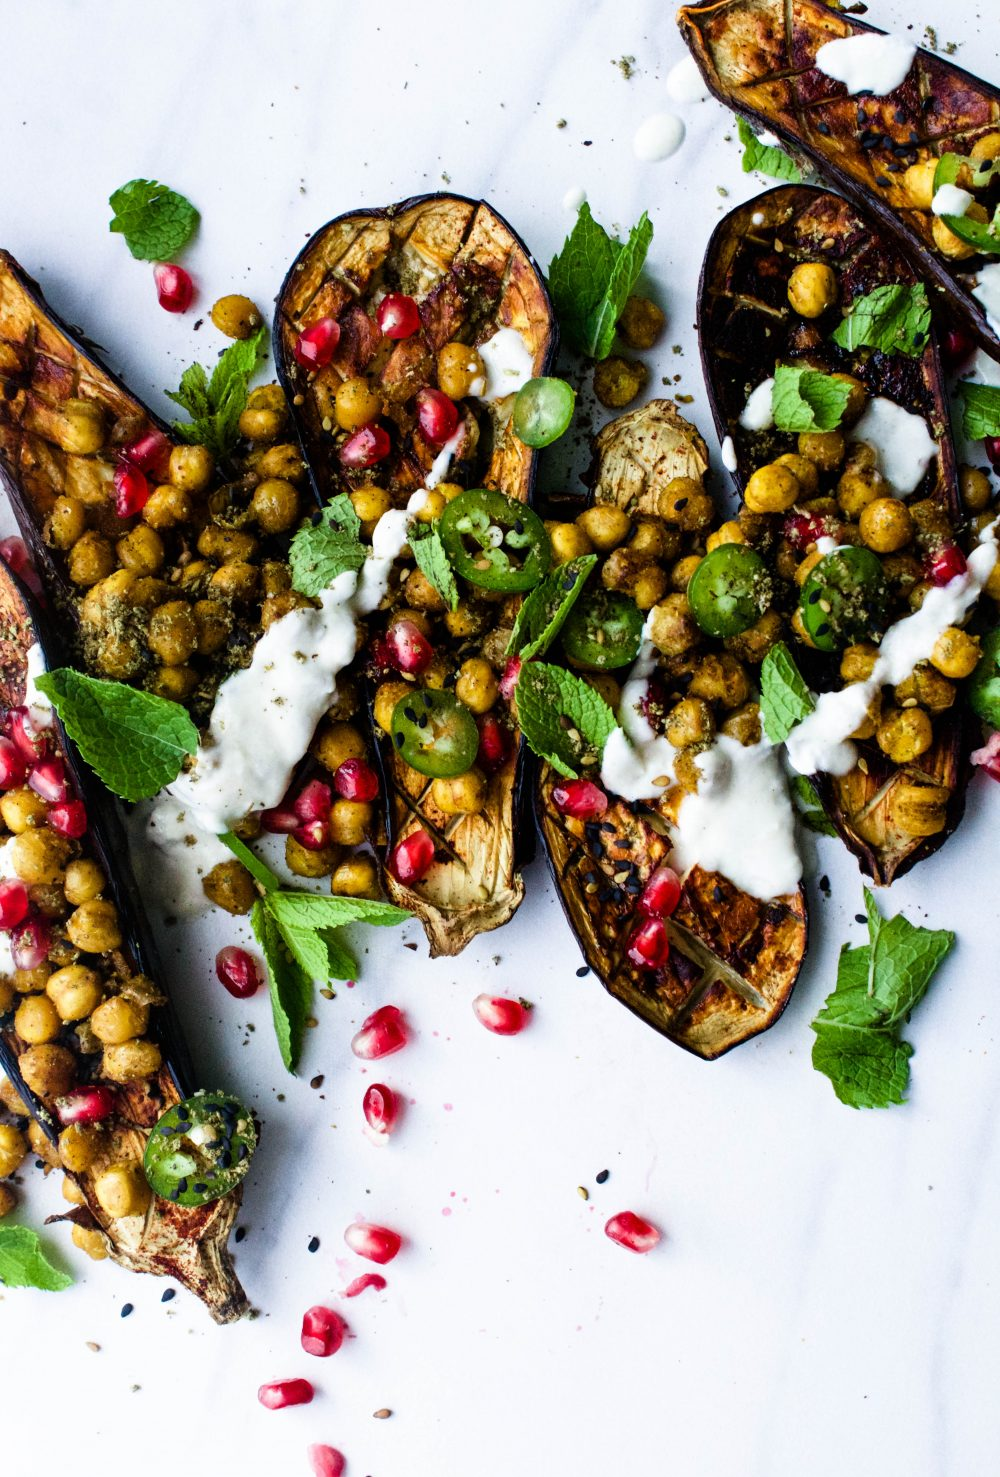 Charred Eggplant w/ Curried Chickpeas